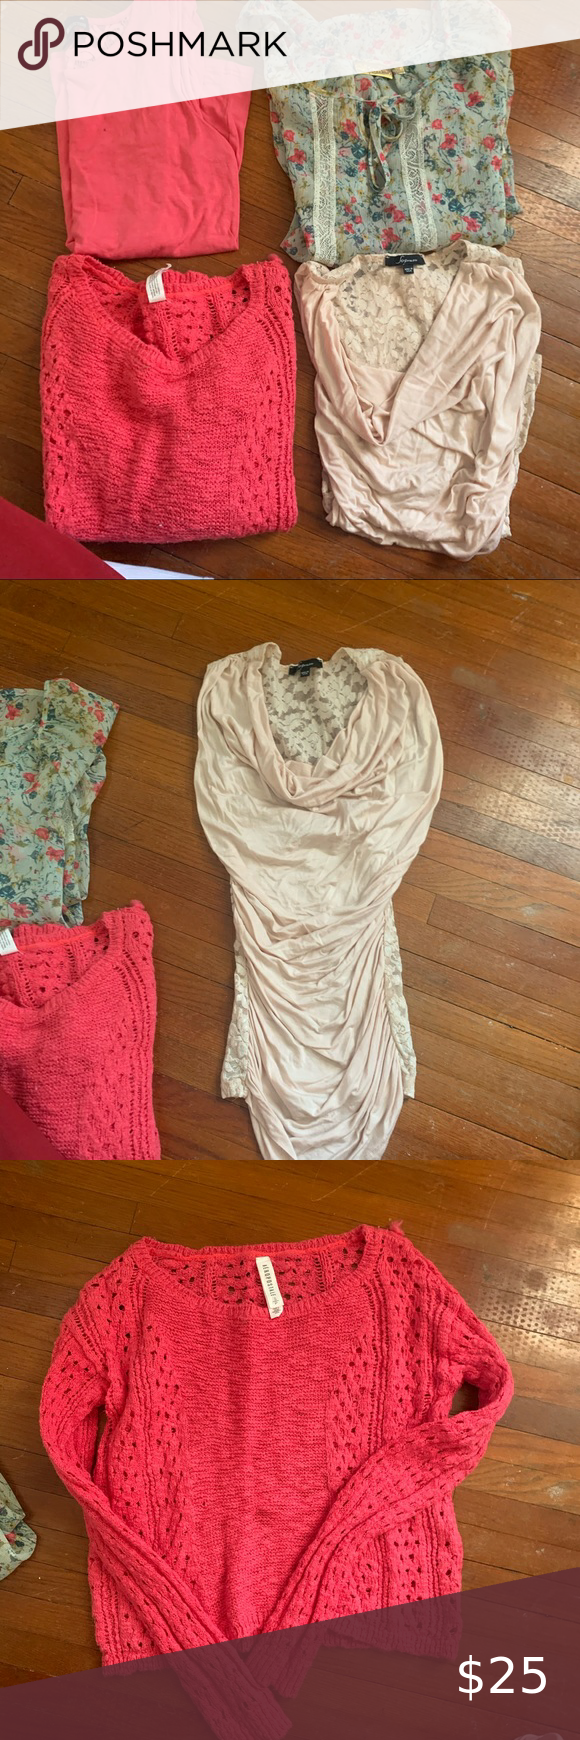 Spring/summer tops bundles size small Needs a new home � Make an offer please! Please see photos for me info I am happy to answer and questions you may have � Tags: fashionable, fashionista, trendy, comfy, cozy, business casual, quality, warm, winter clothing, summer clothing, college, sorority, ootd, fraternity, brandy Melville, target, fashion nova, wrangler, spring break, spring Candie's Tops